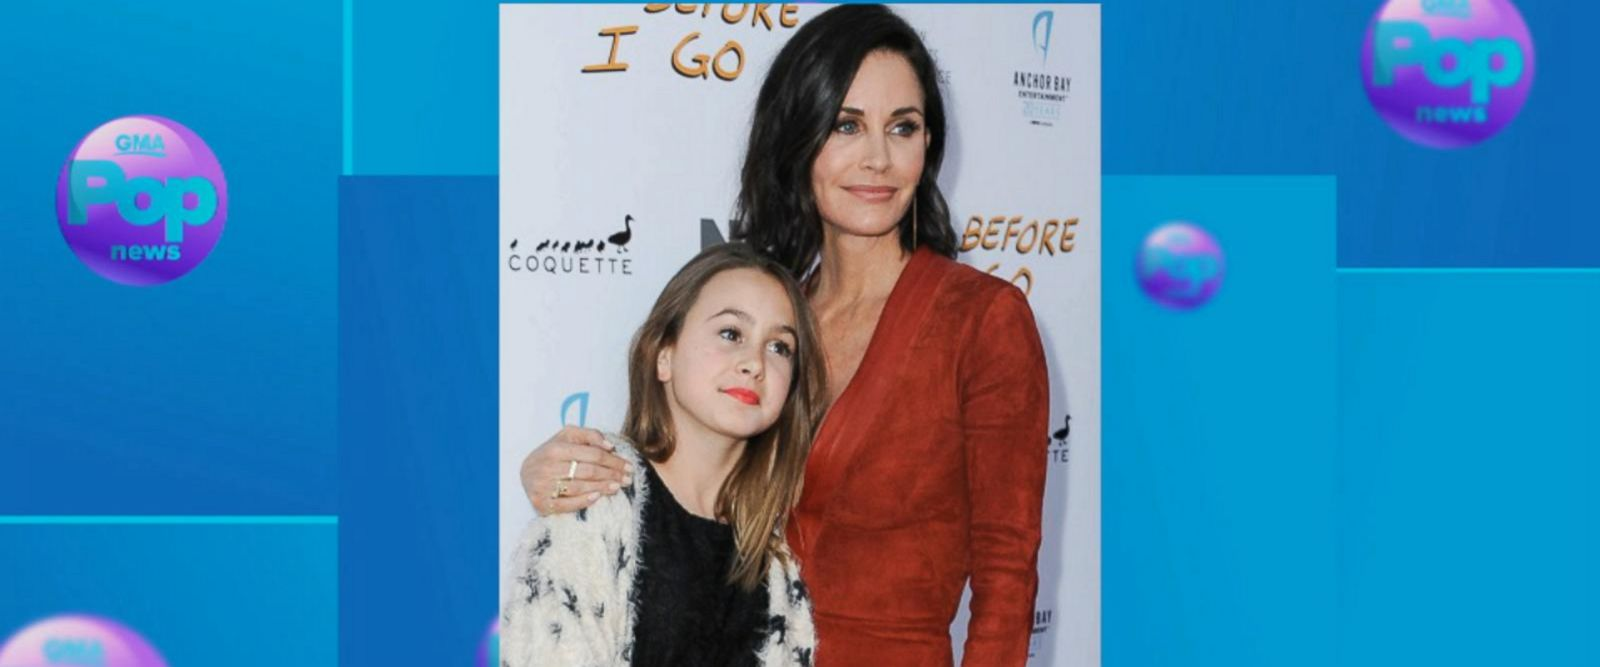 VIDEO: Courteney Cox's daughter follows in mom's footsteps, stars in music video